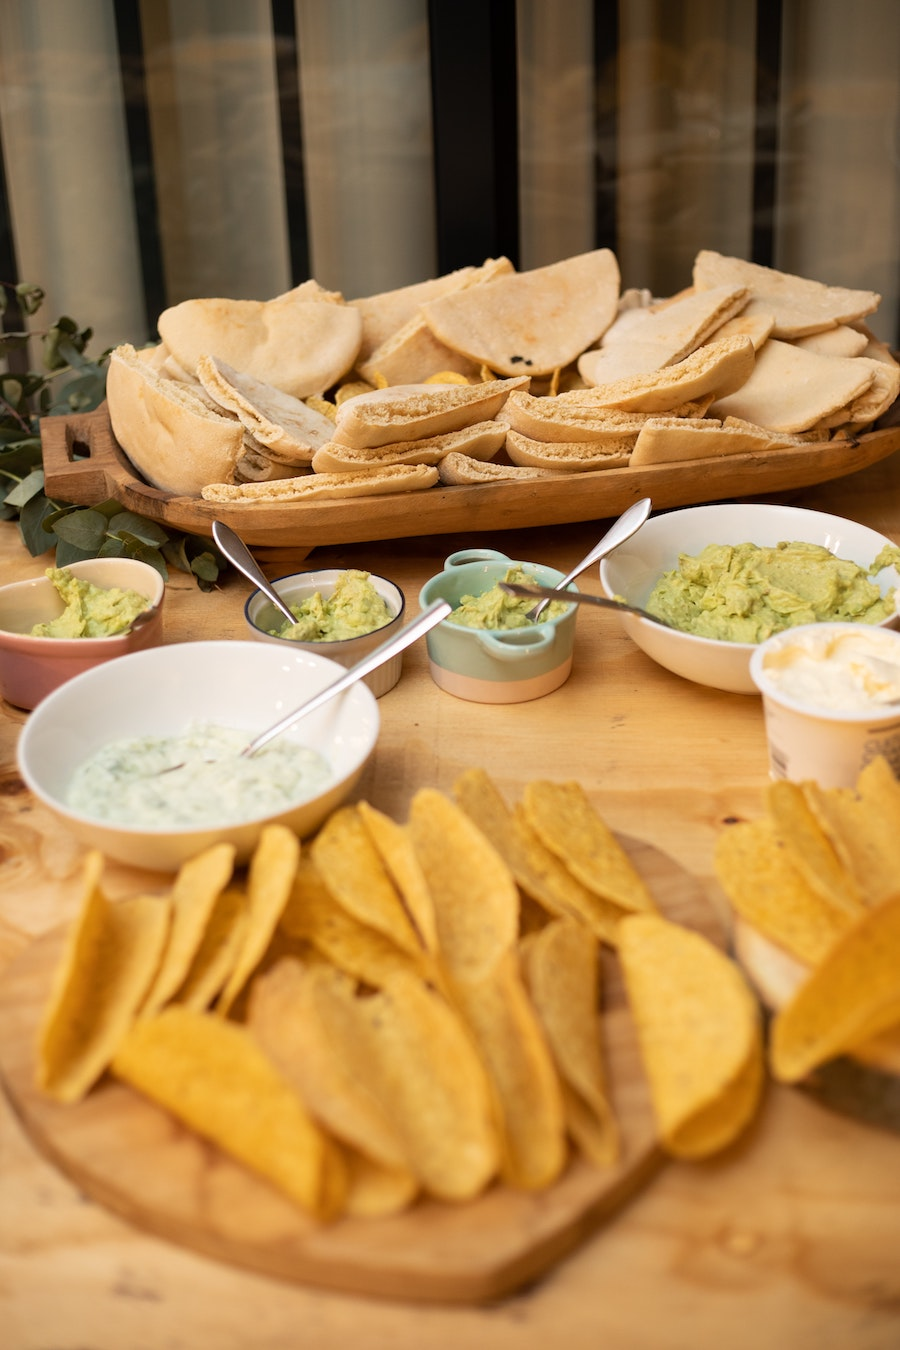 Homemade dips and dressings for lighter meals in the spring and summer